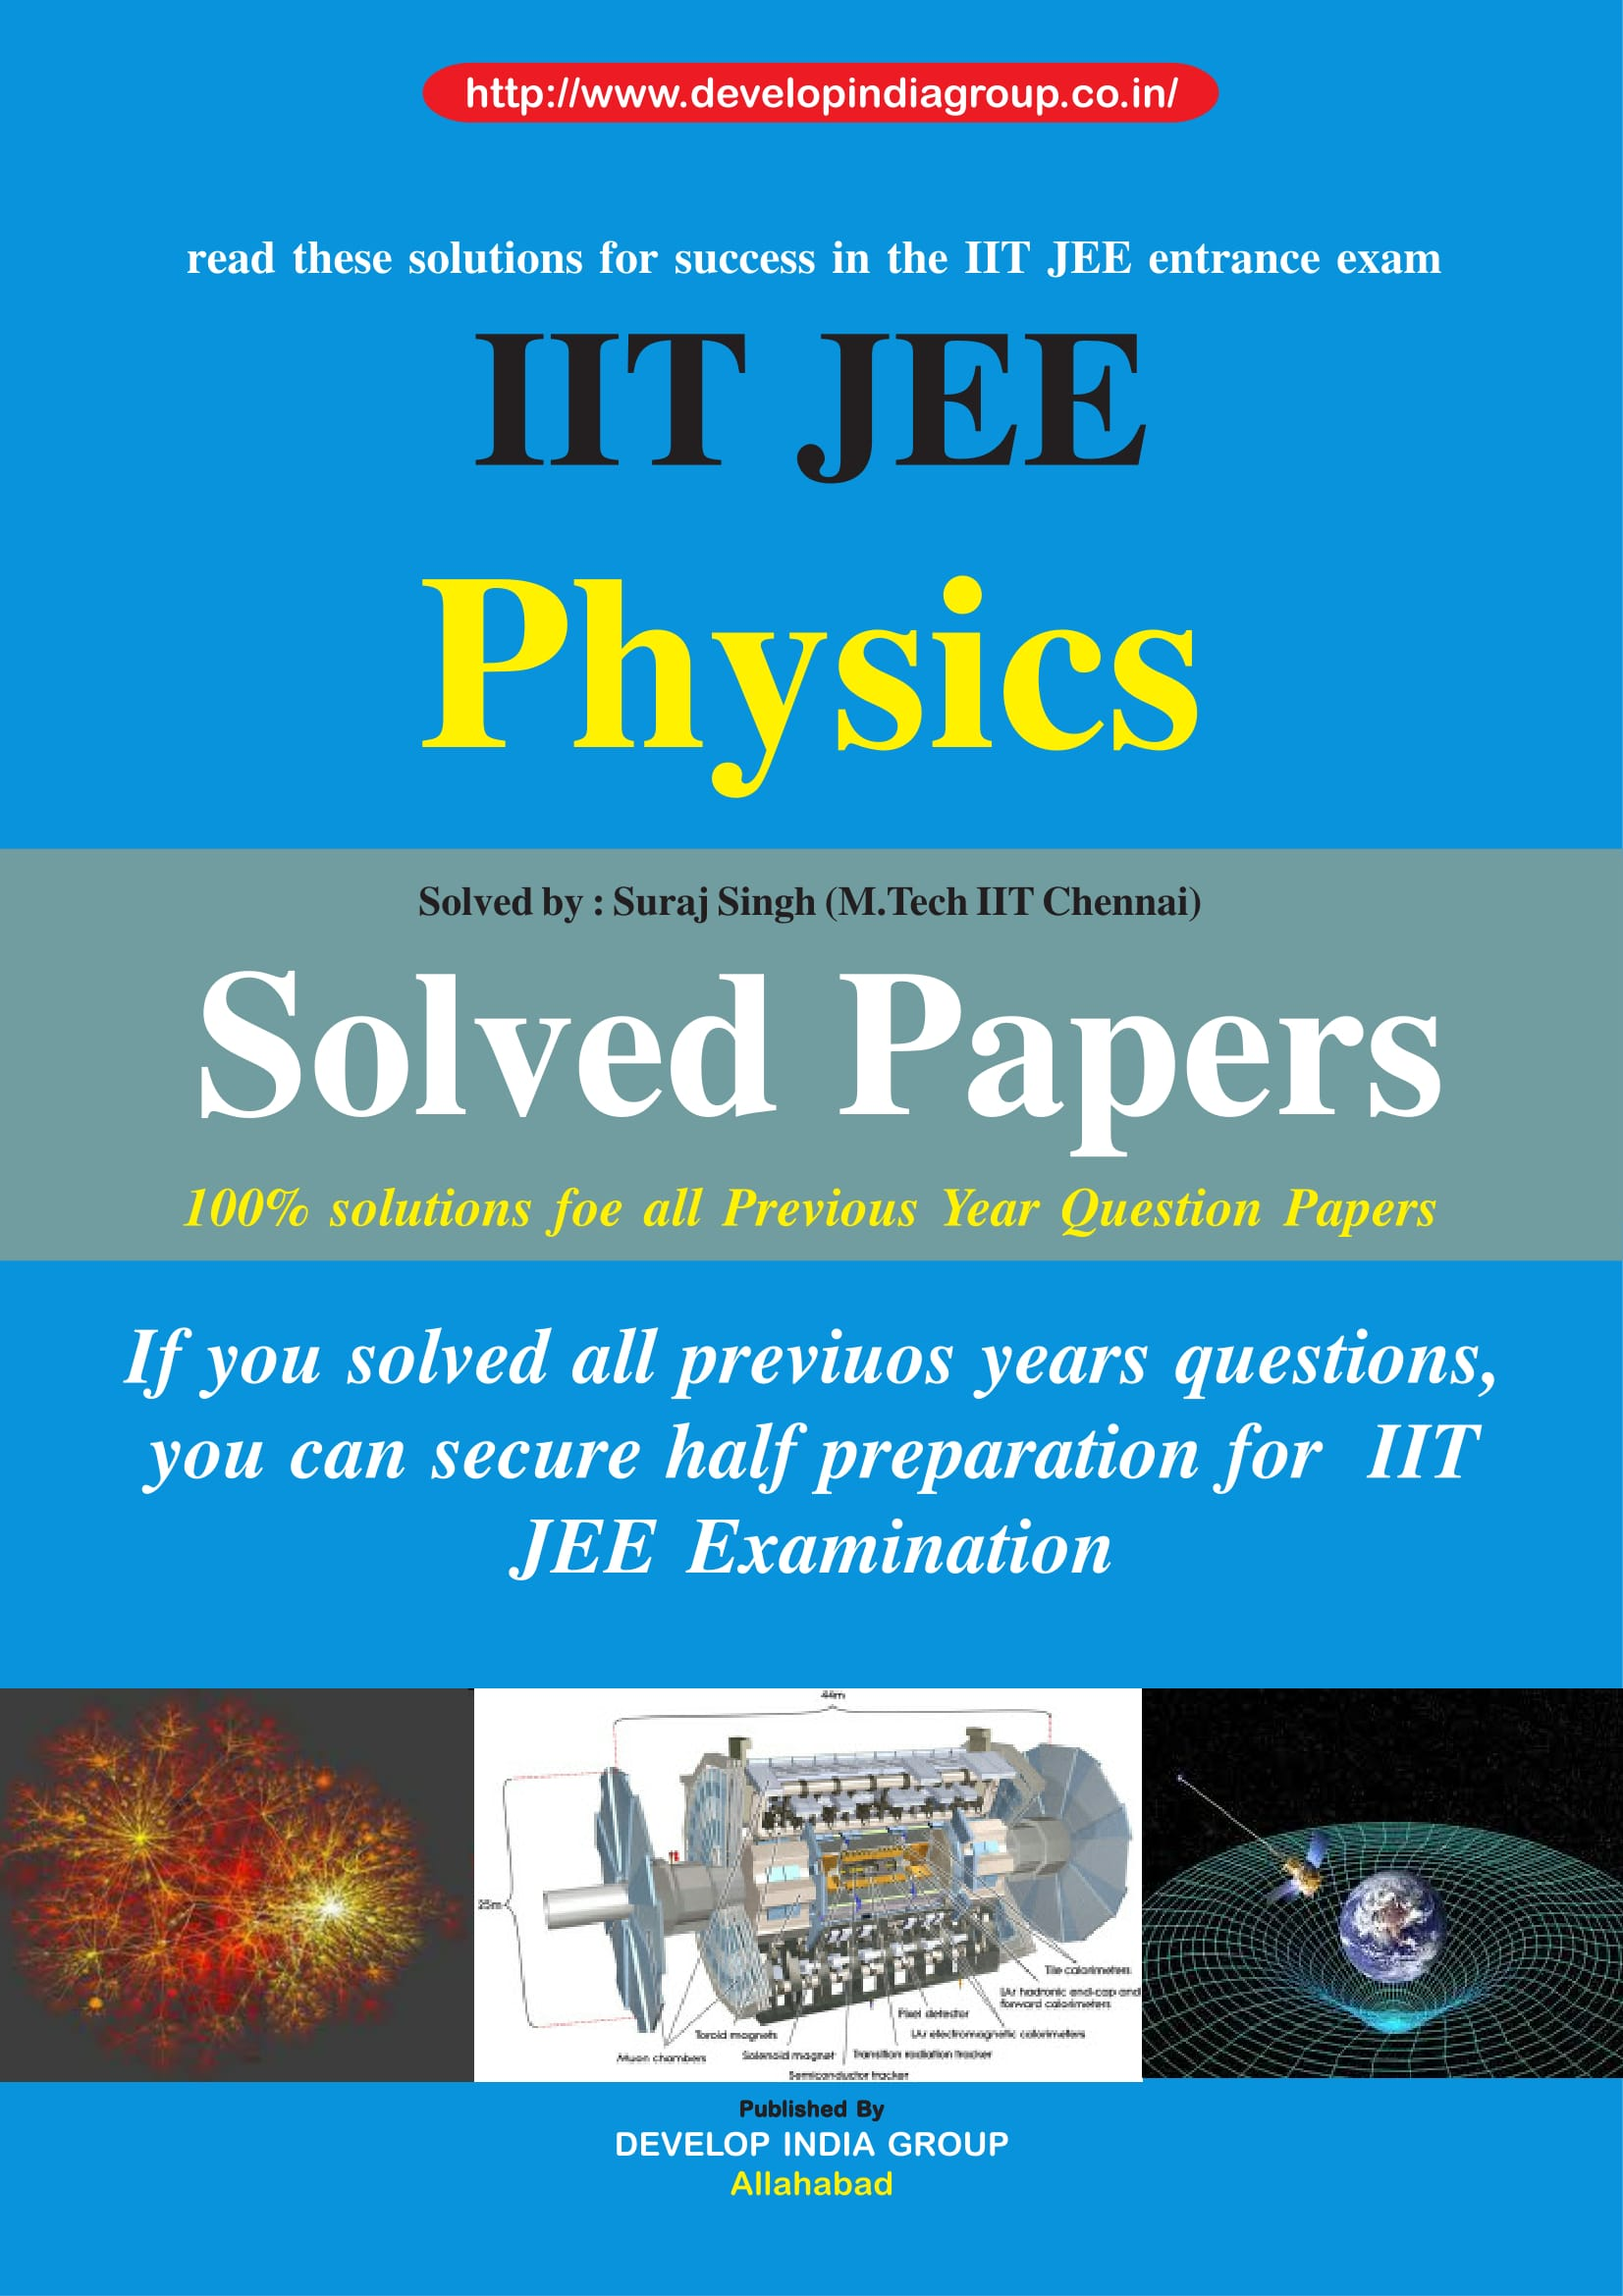 IIT JEE Exam Complete Study Notes available